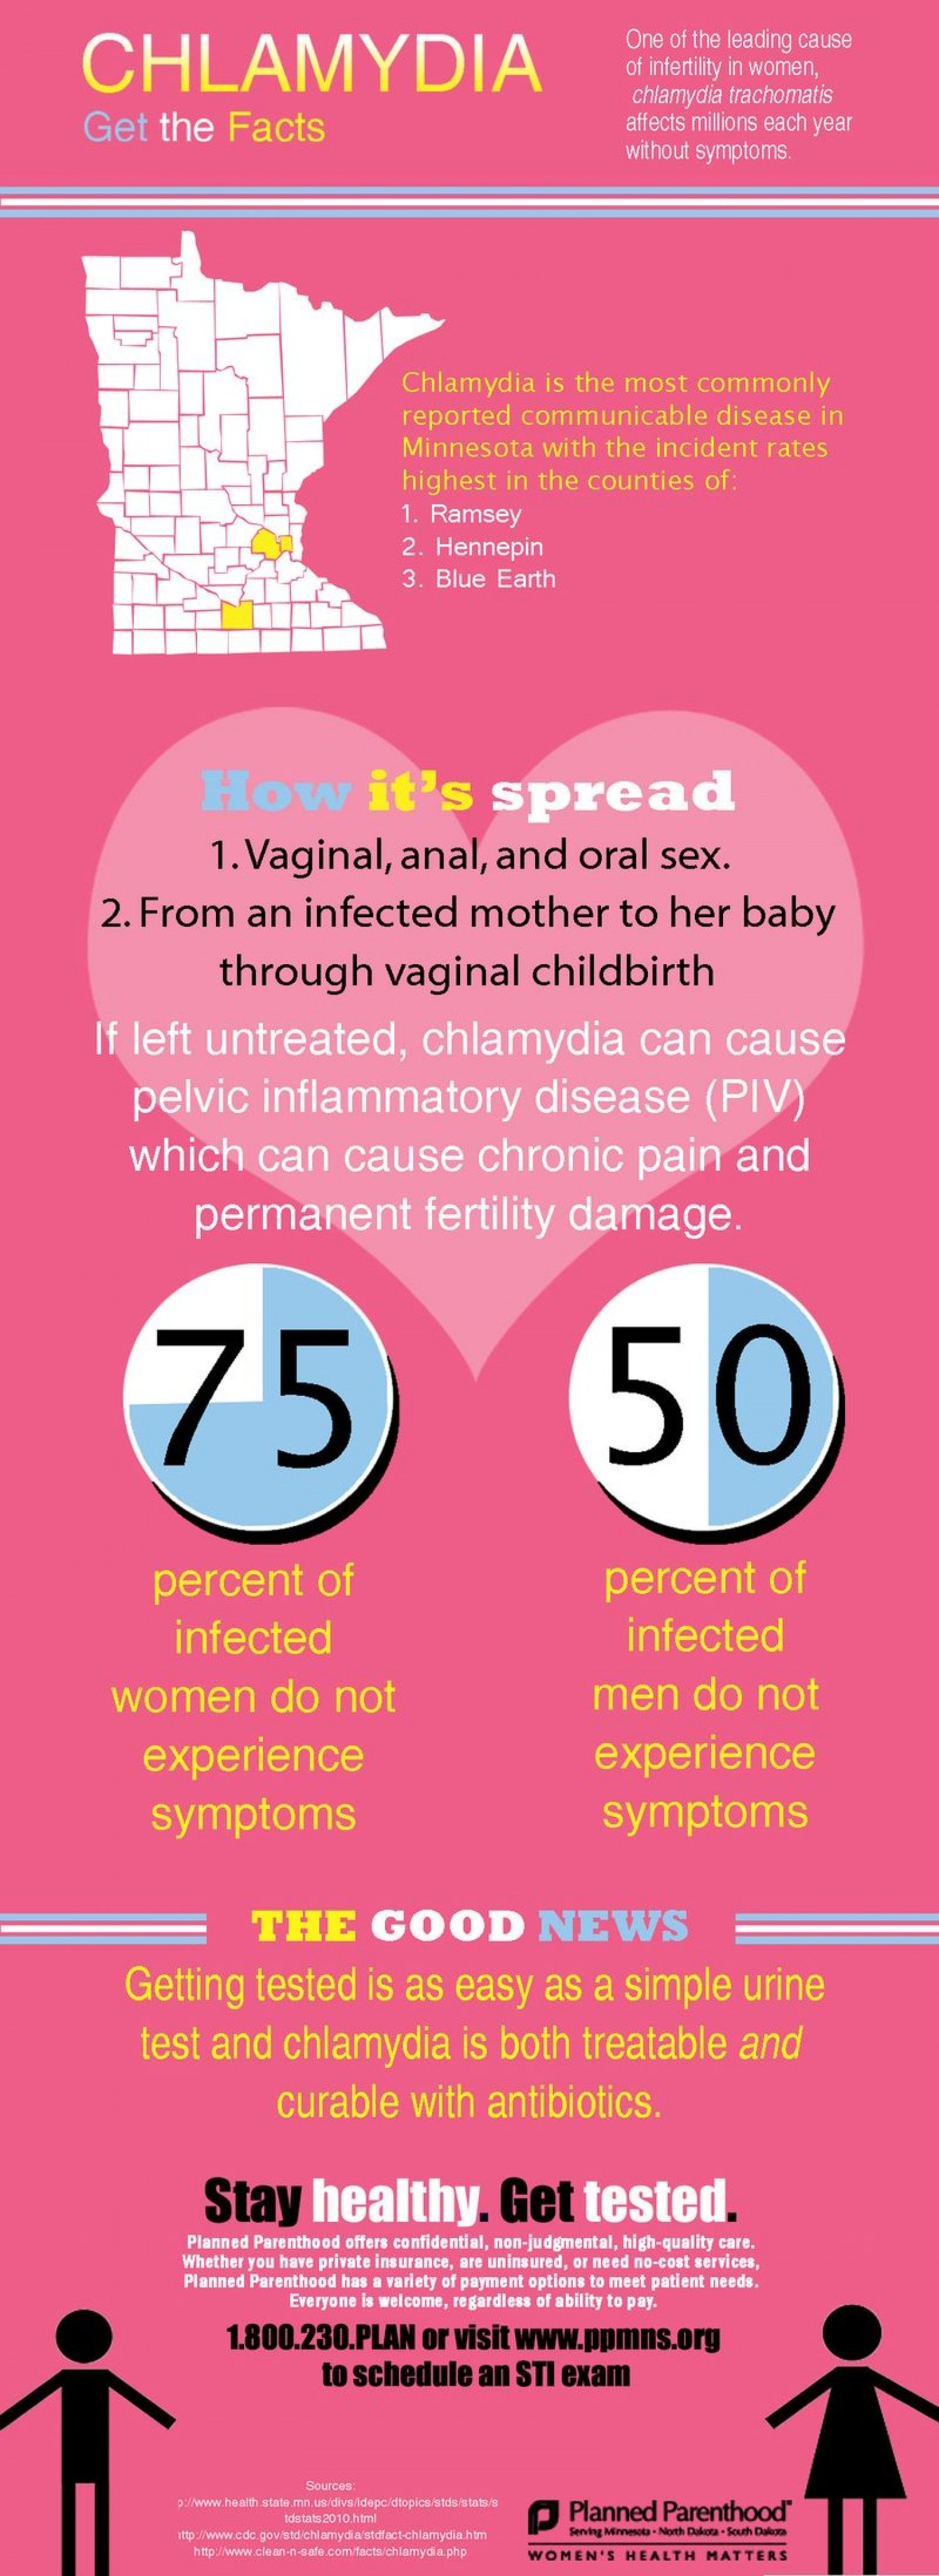 Chlamydia Facts Infographic